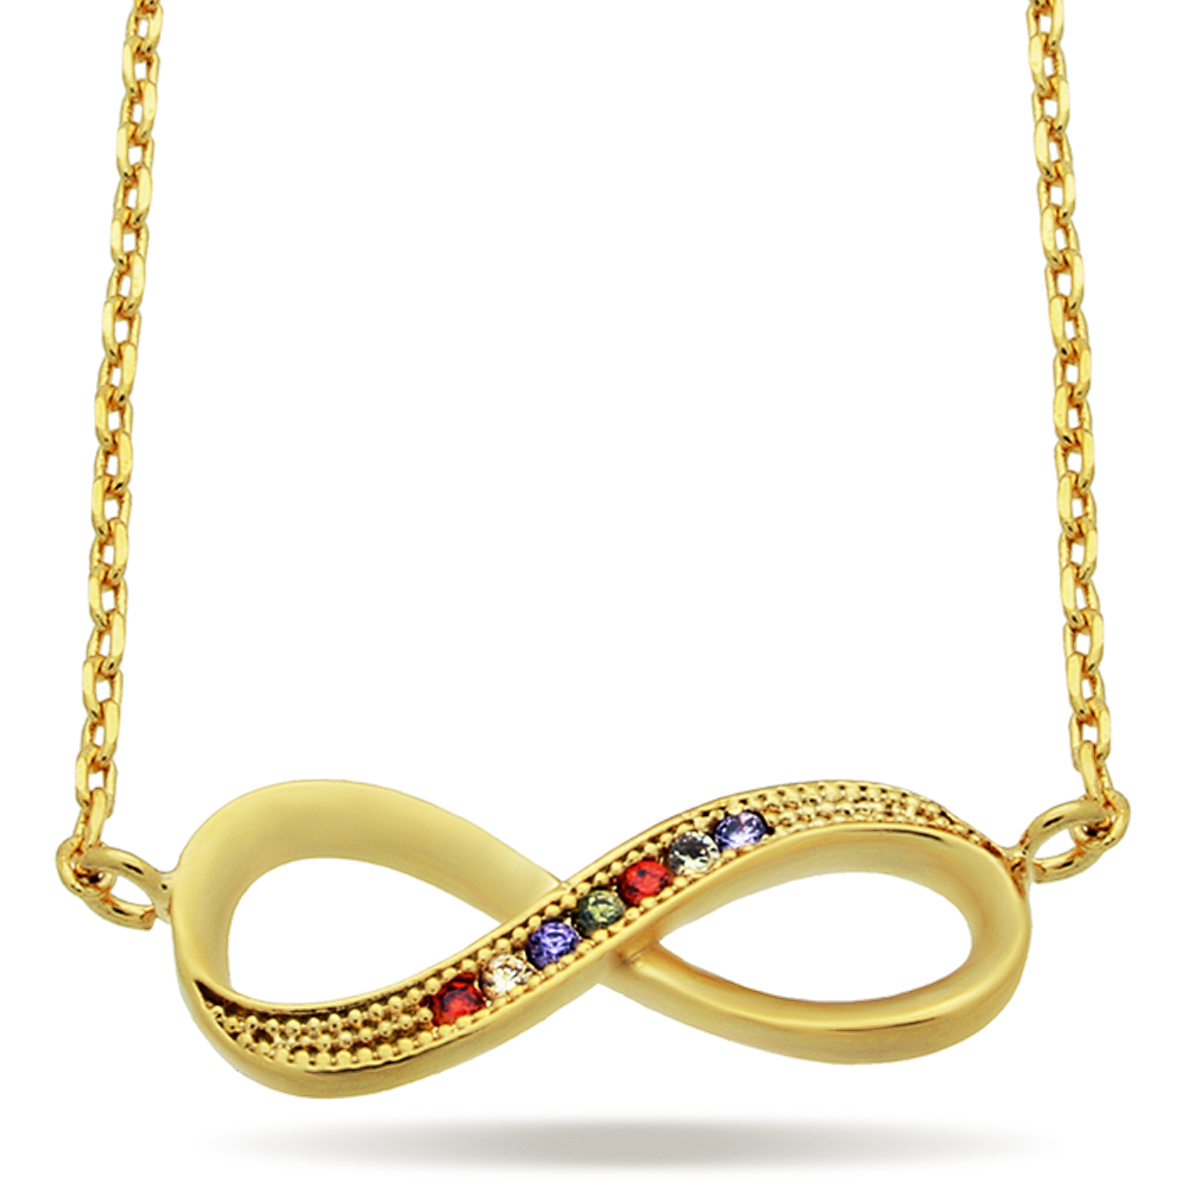 TZARO JEWELRY | 14kt Gold filled Infinity Necklace, Gold ...